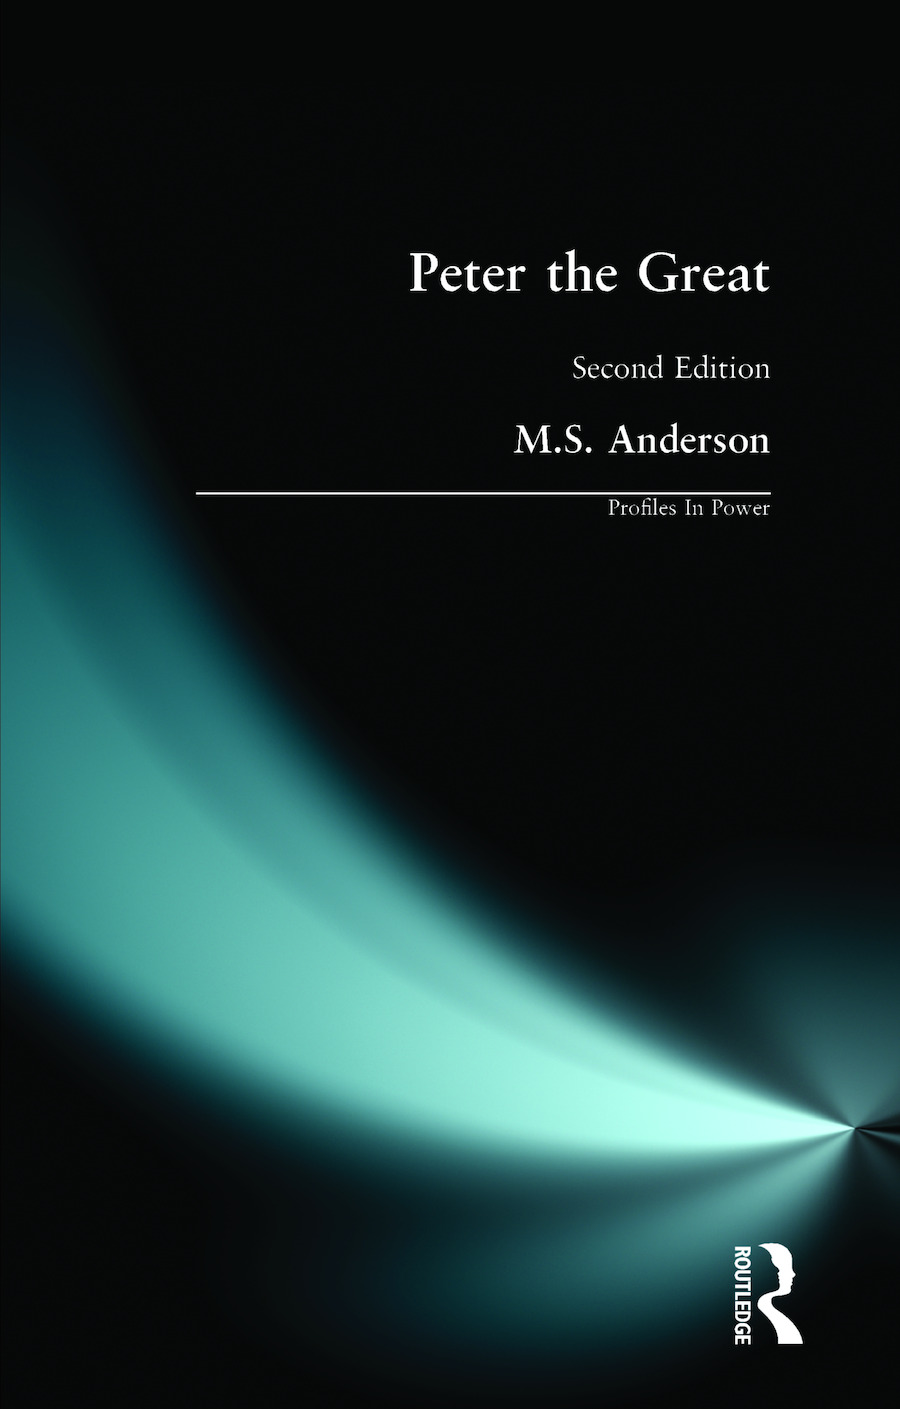 Peter the Great book cover